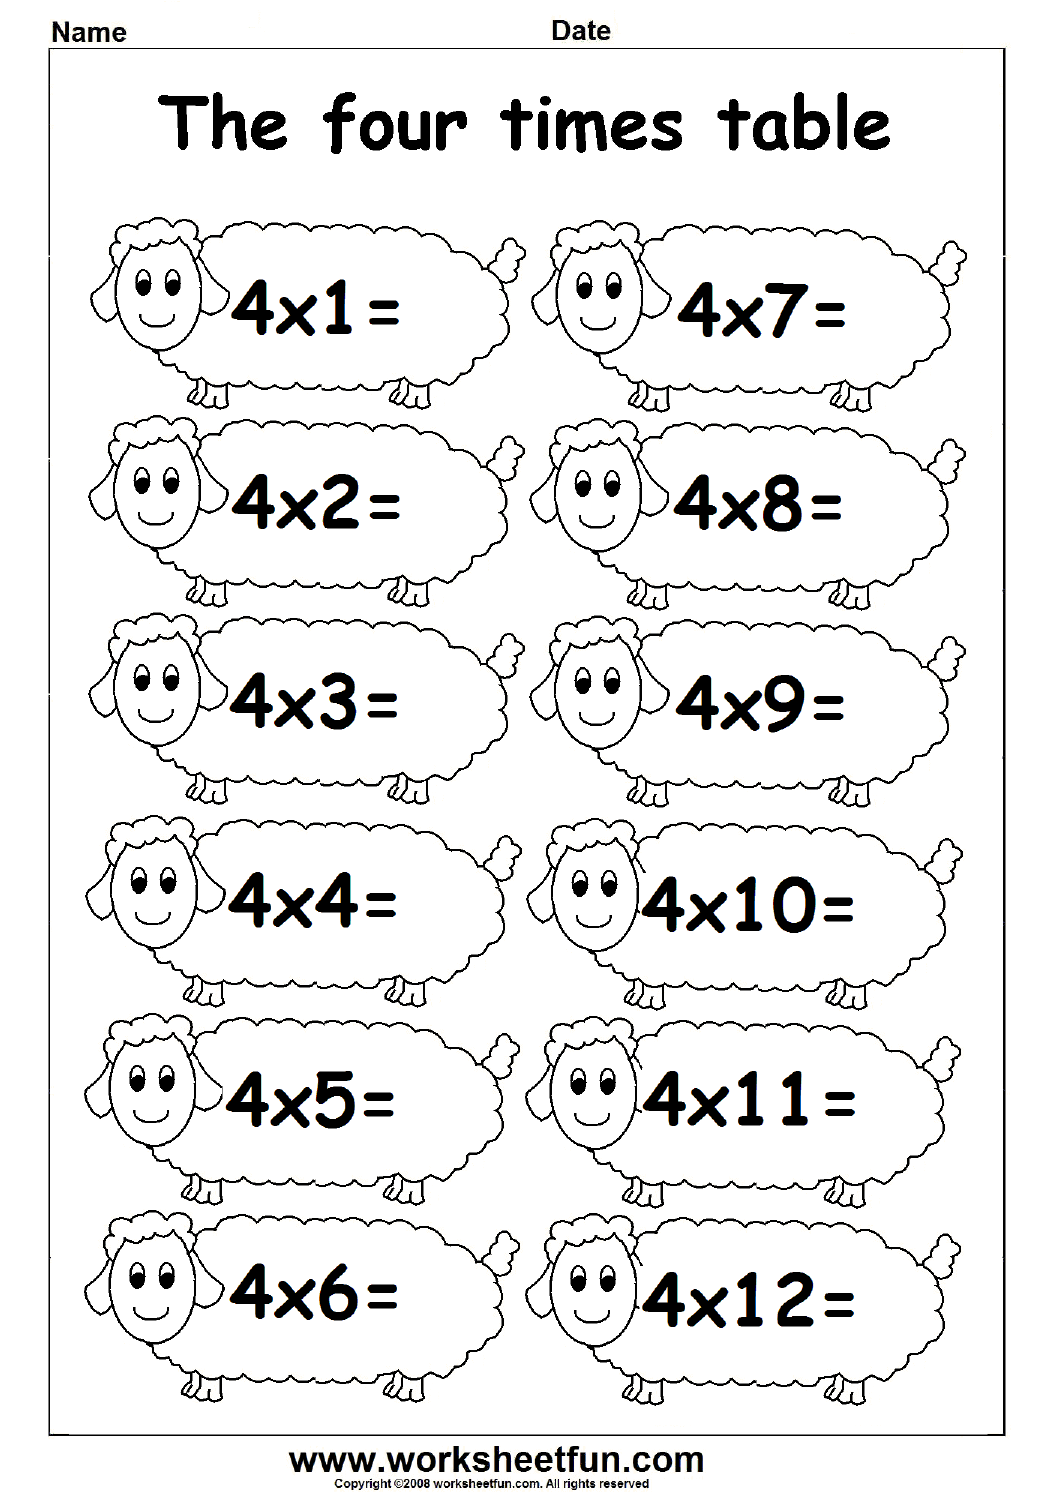 Fun Times Table Worksheets 2 3 4 – Free Multiplication Facts Worksheets